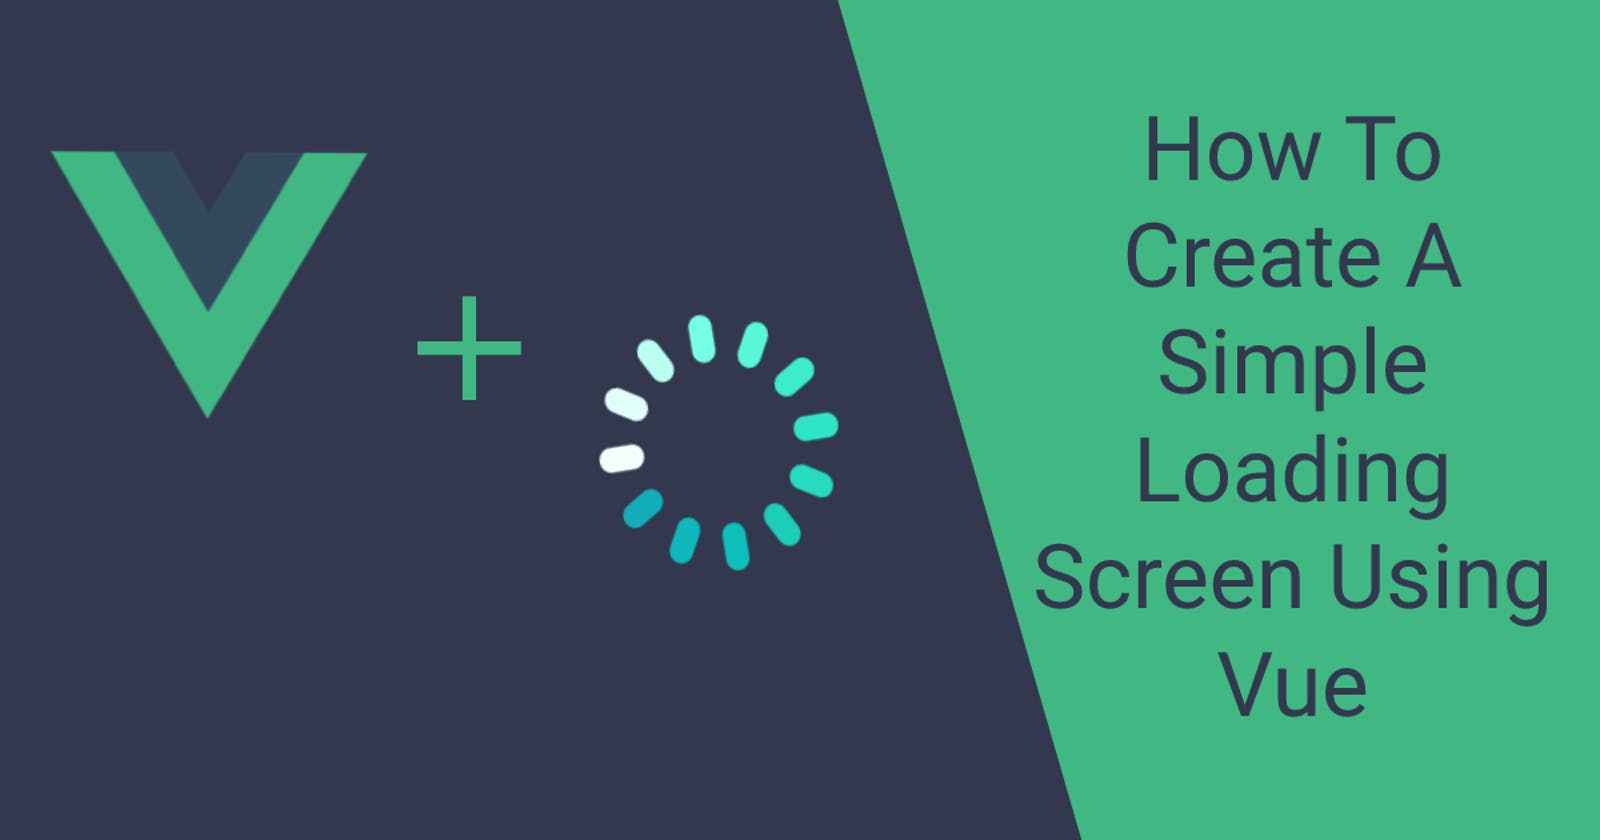 How To Create A Simple Loading Screen Using Vue